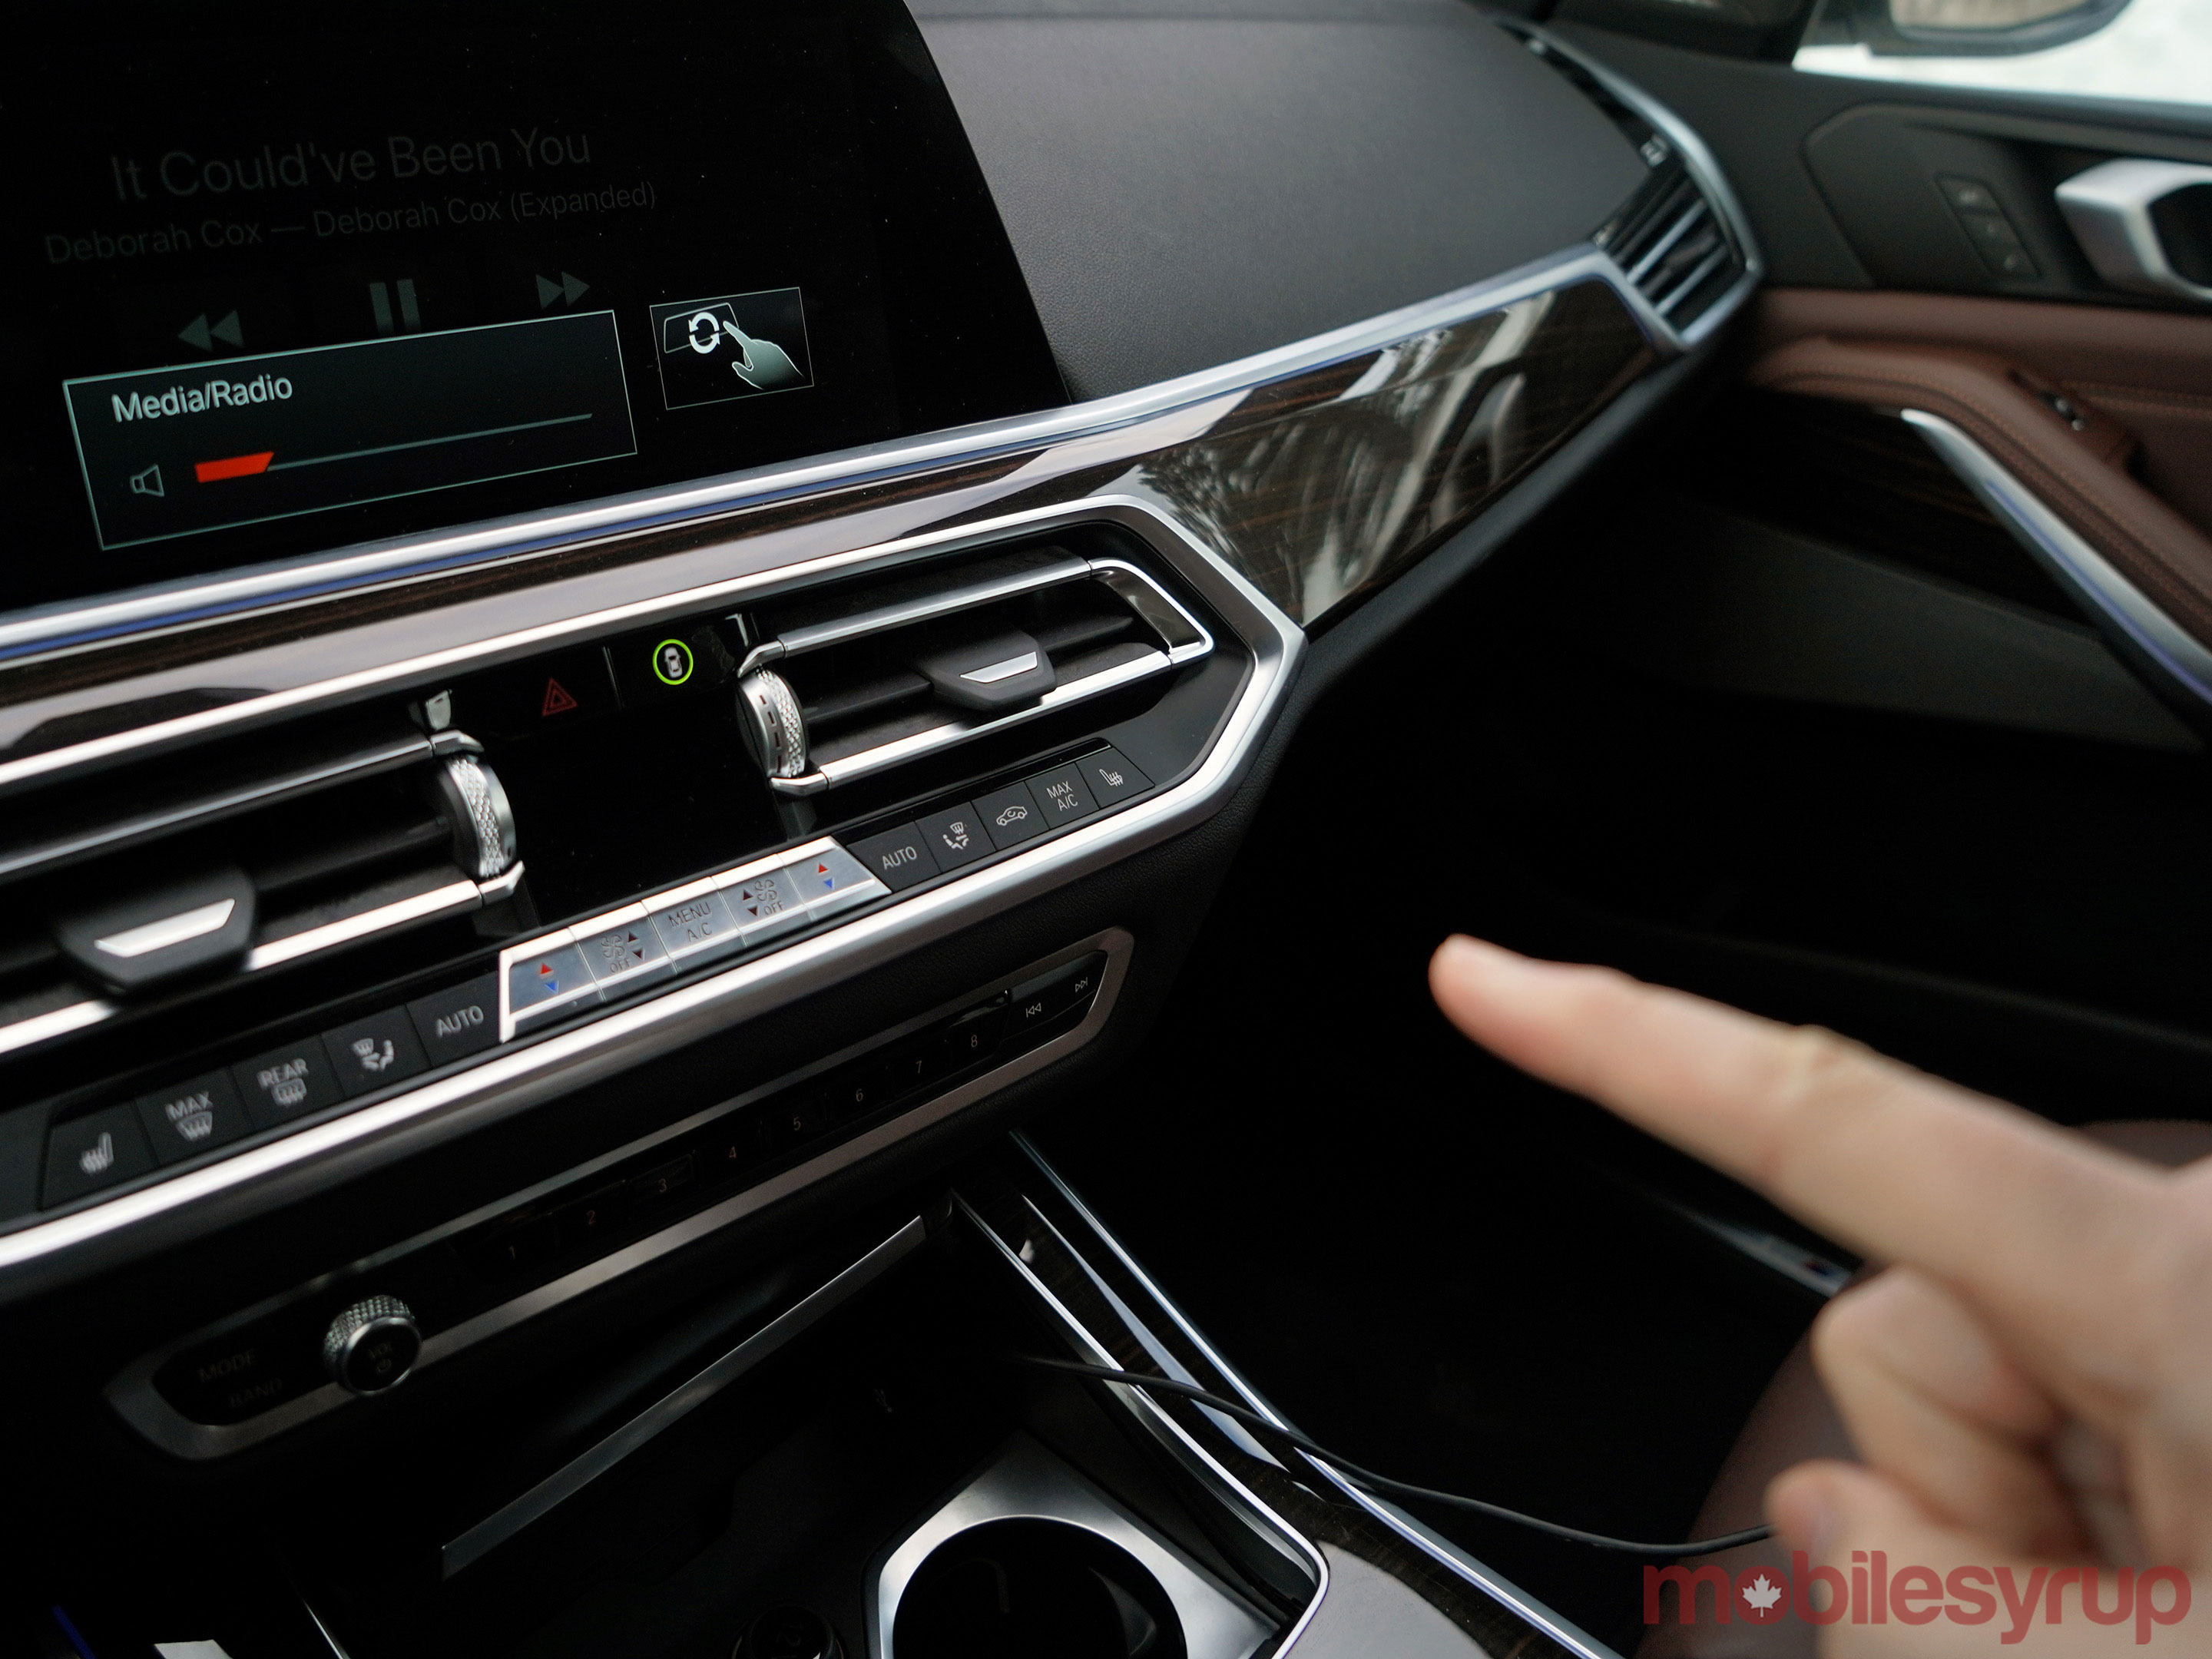 BMW iDrive gesture controls